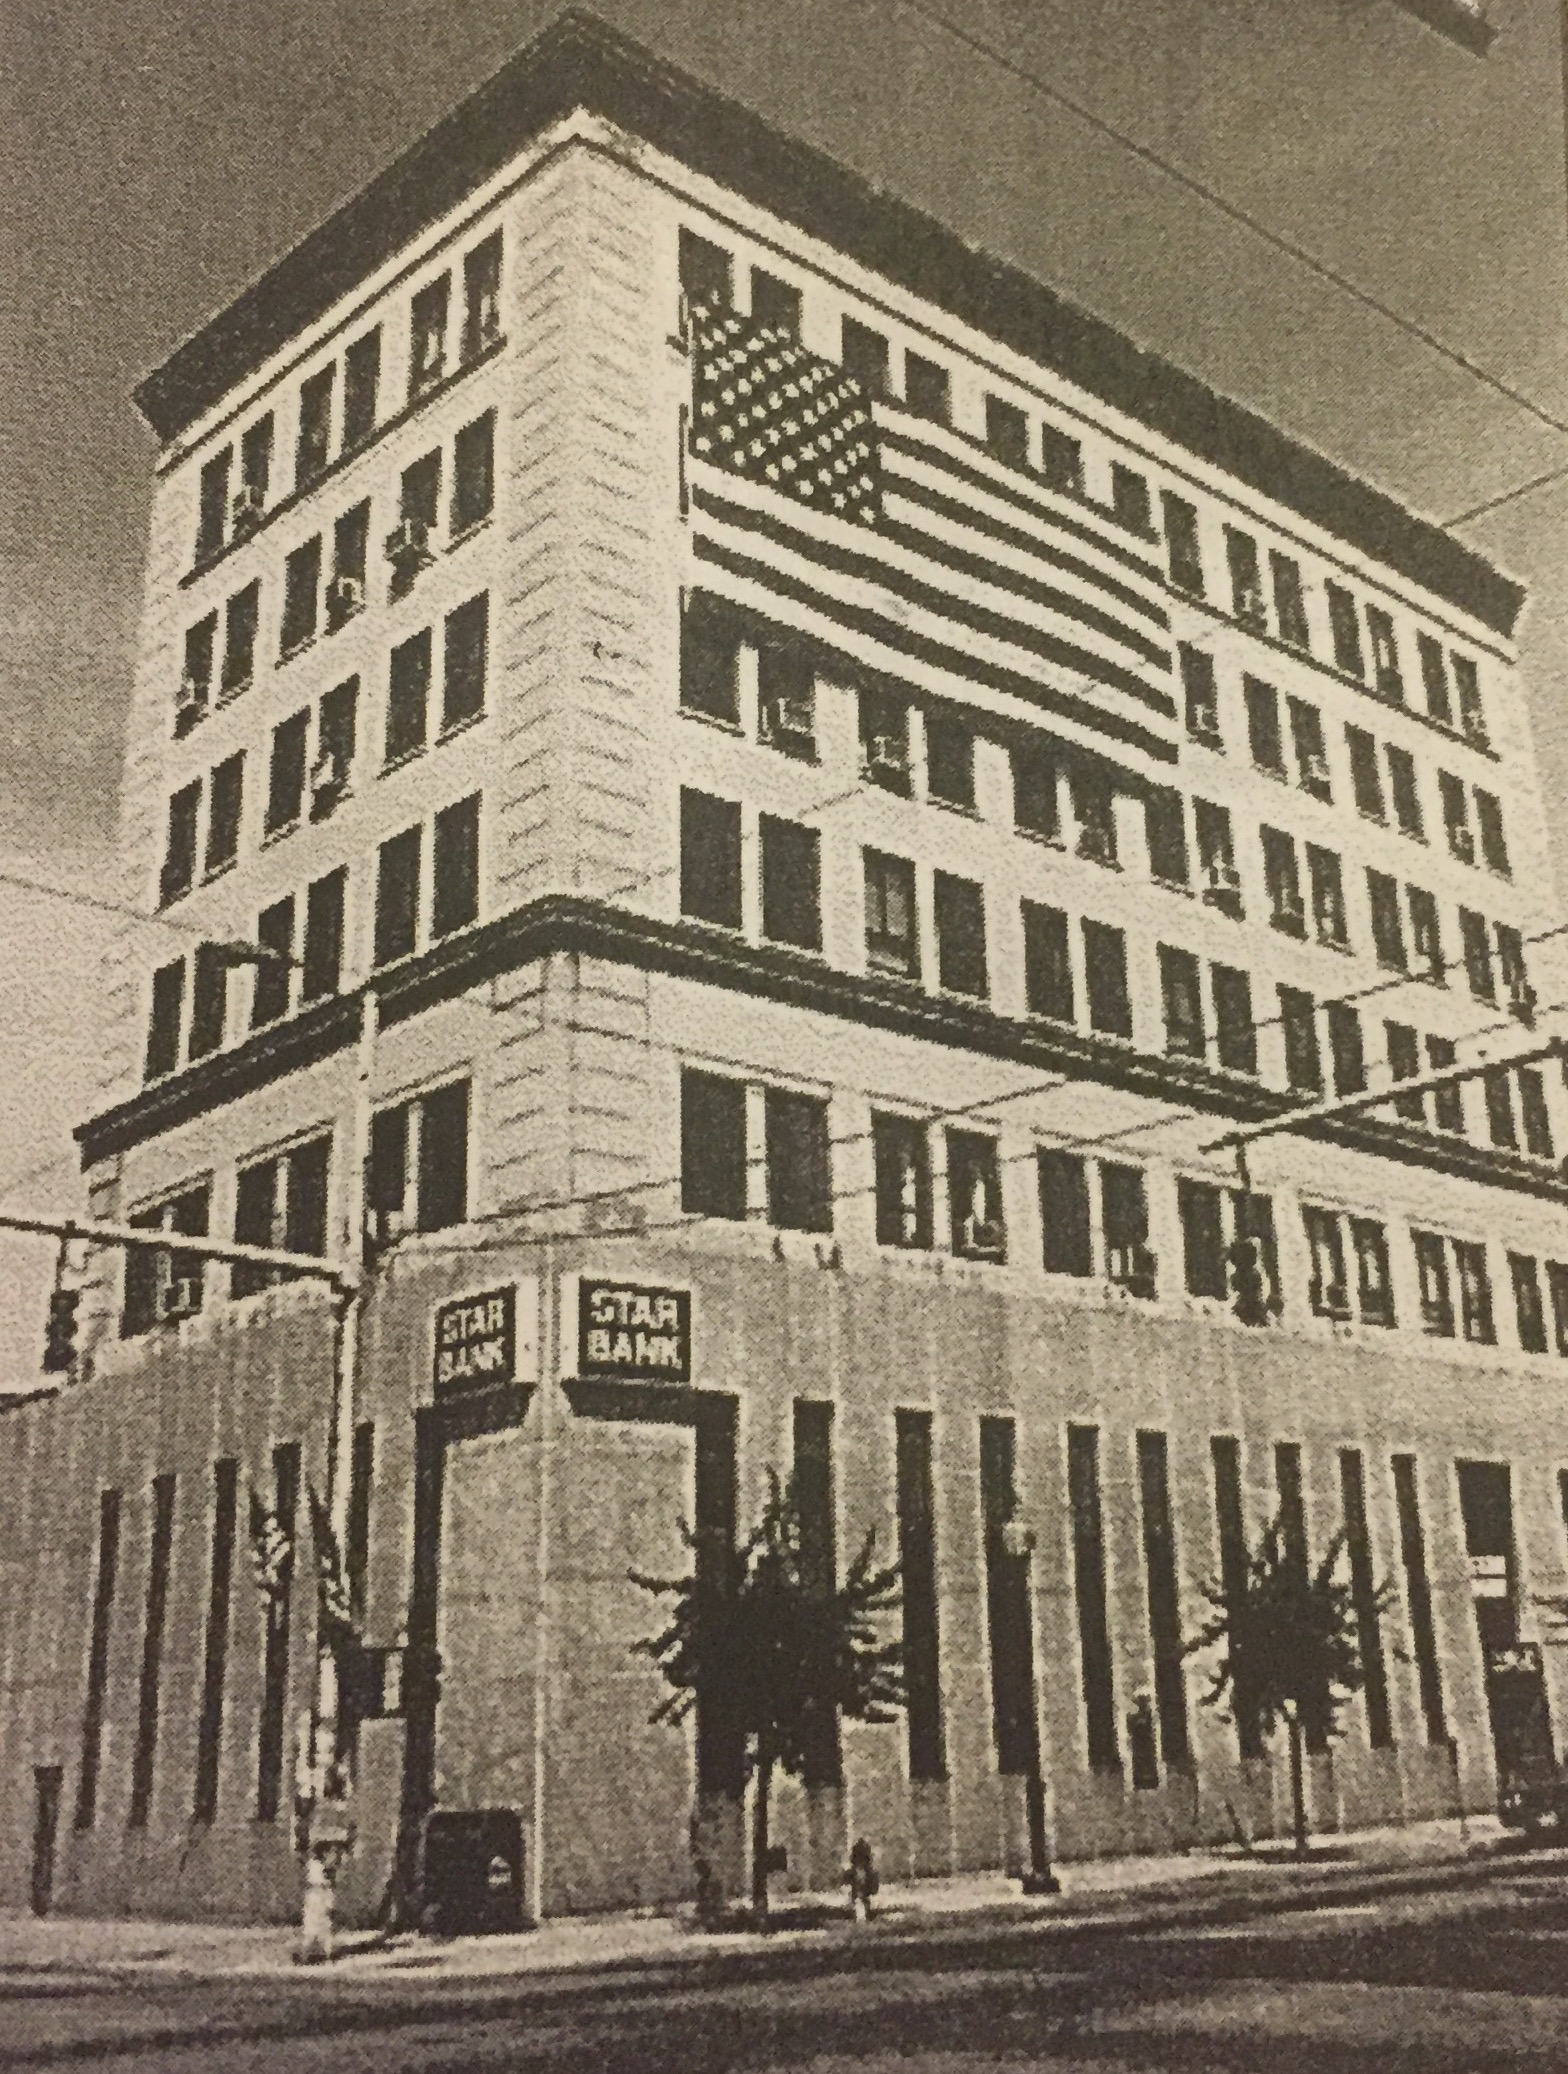 Star Bank, N.A., Tristate